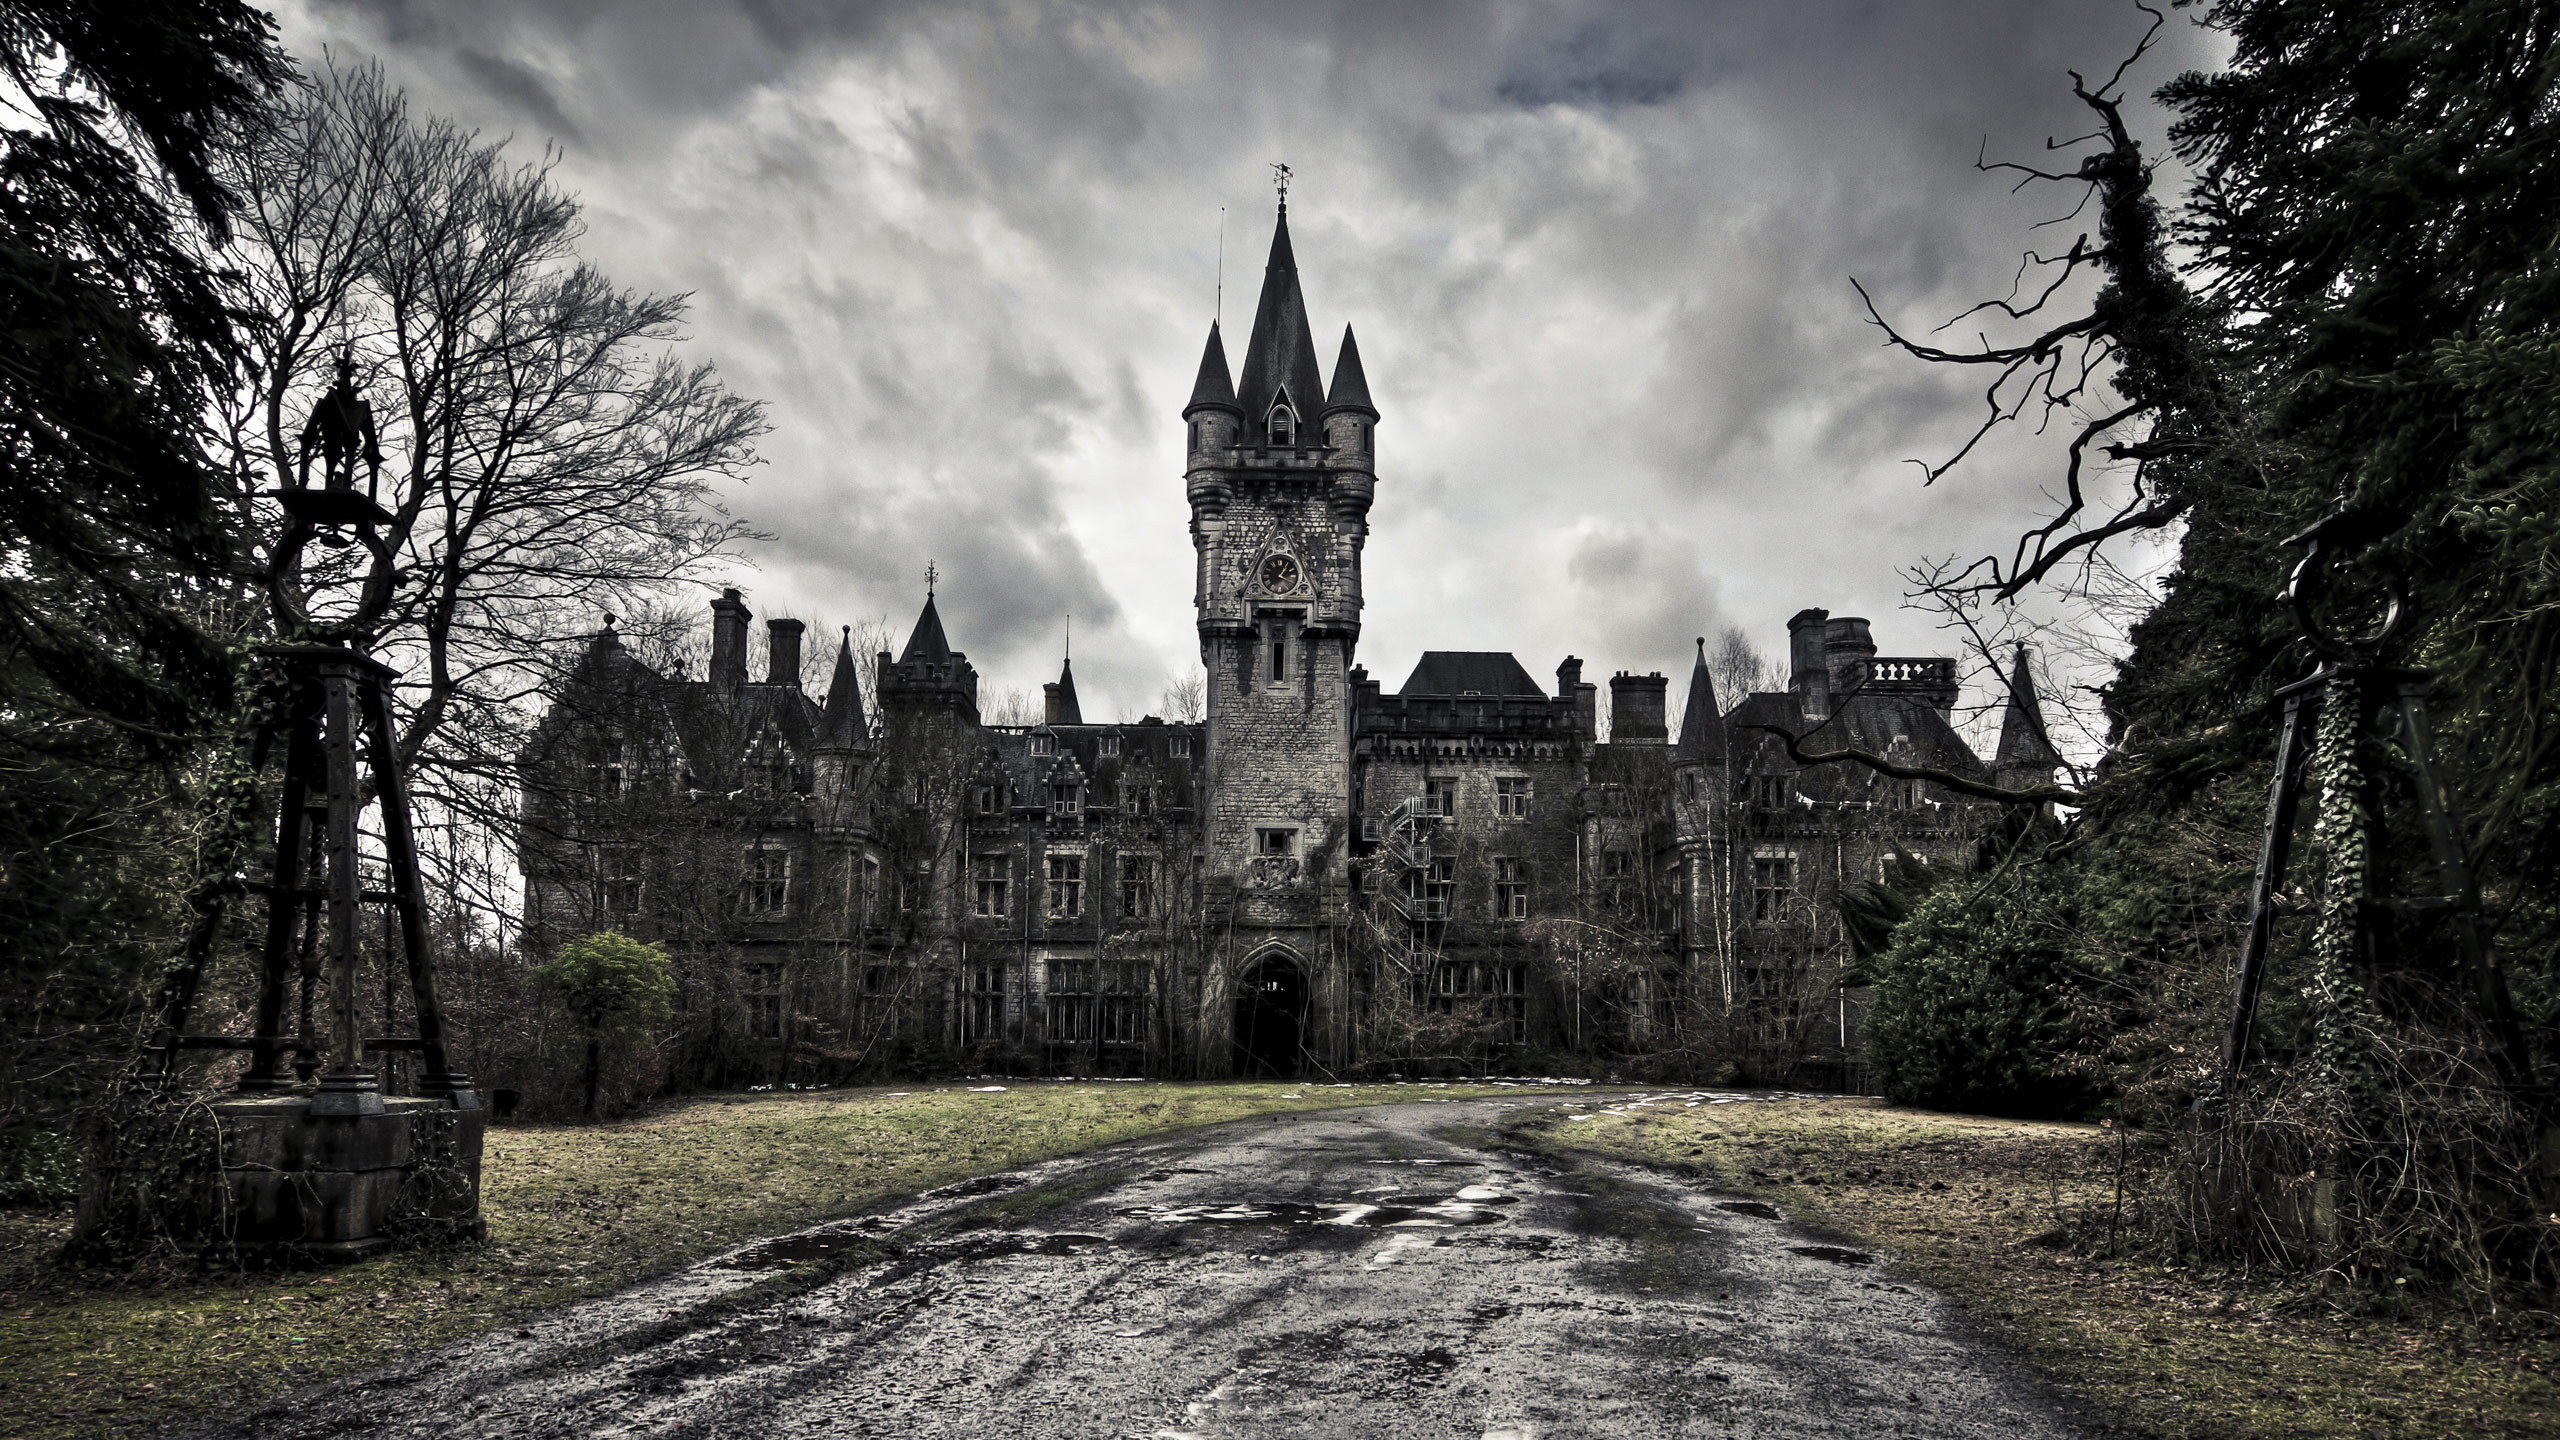 Old Castle, a photo black-and-white colors - Gothic